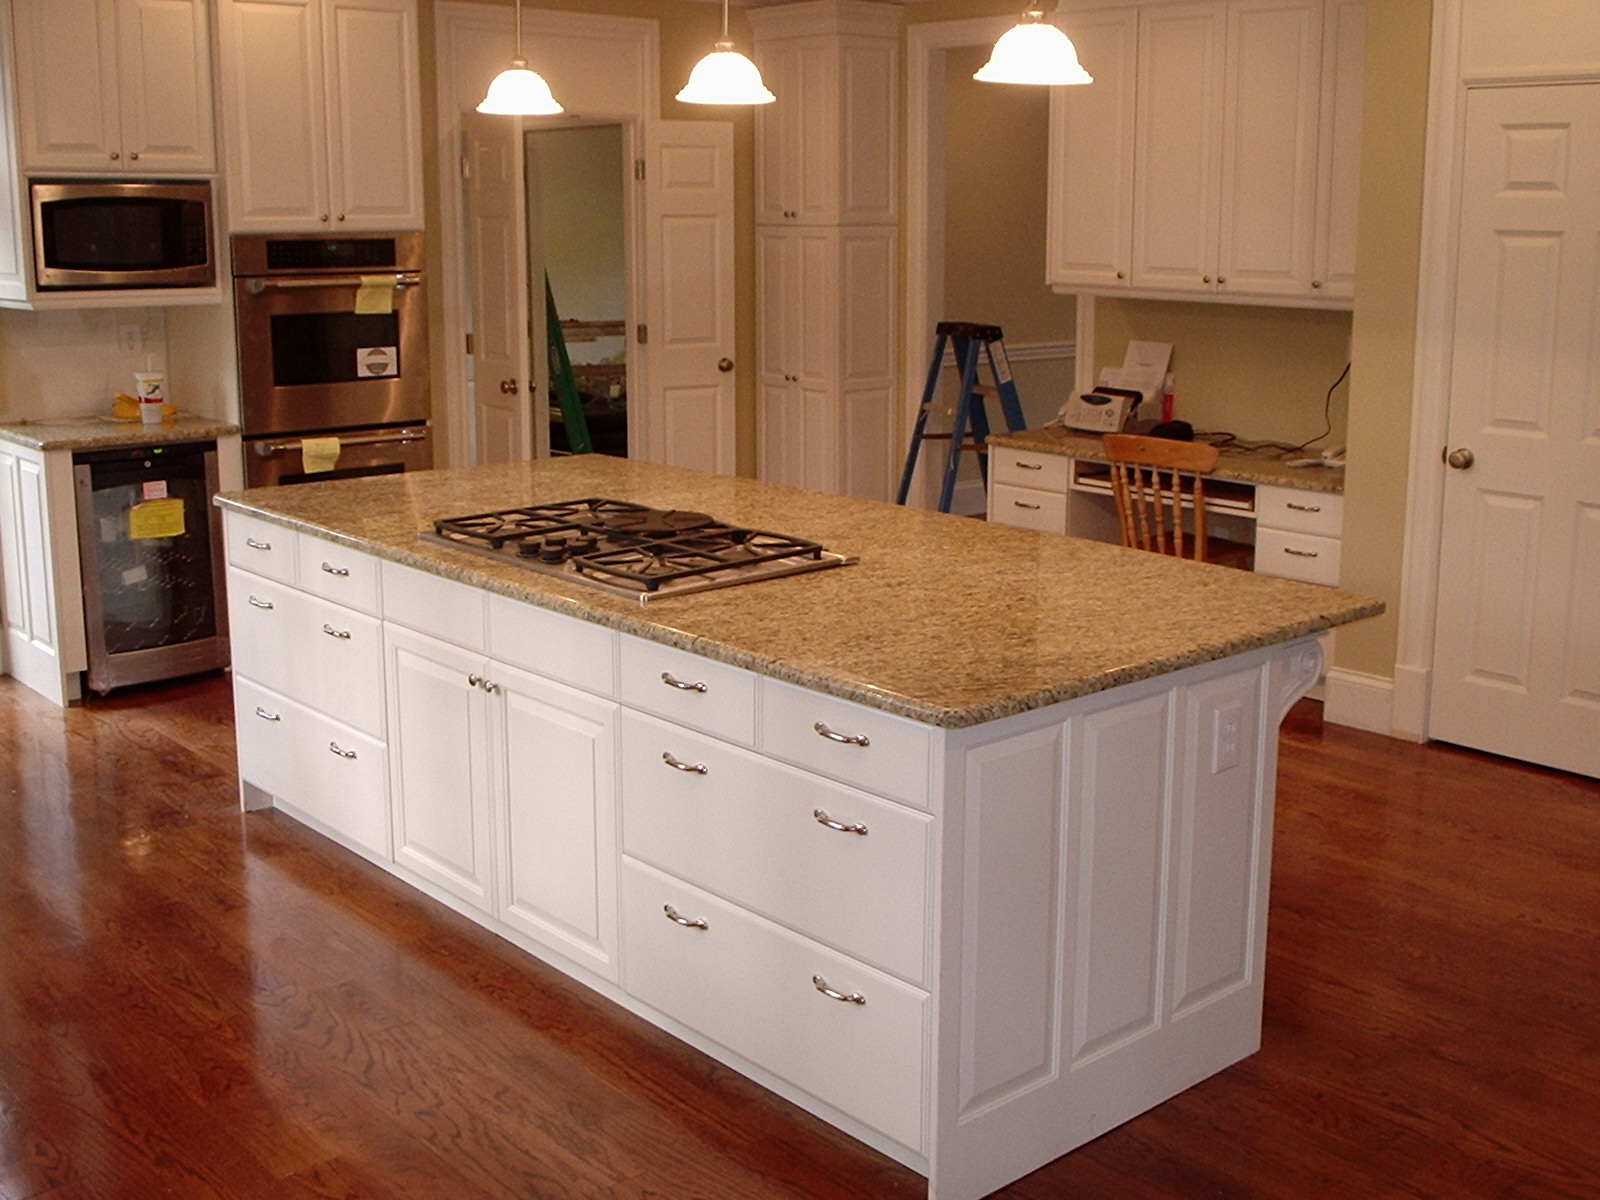 Kitchen cabinet plans dream house experience for Making a kitchen island from cabinets